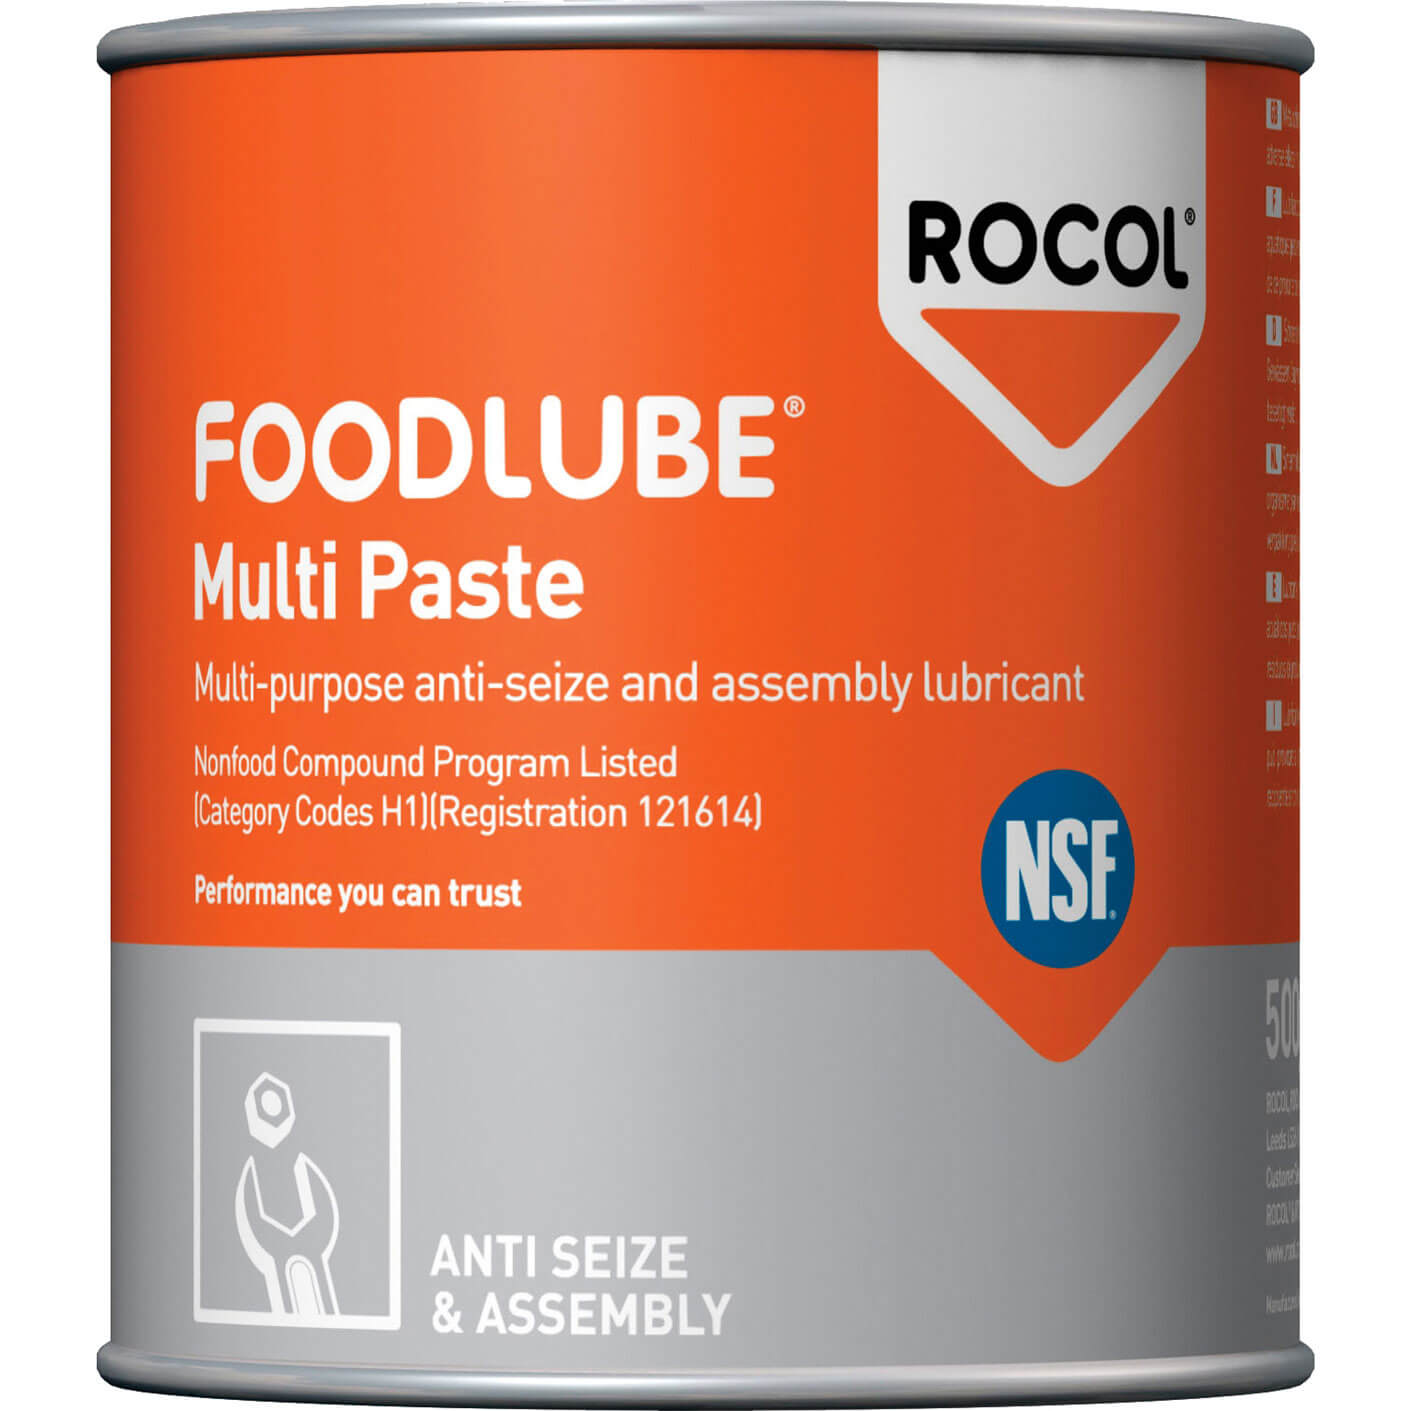 Image of Rocol Foodlube Multi-Paste 500g